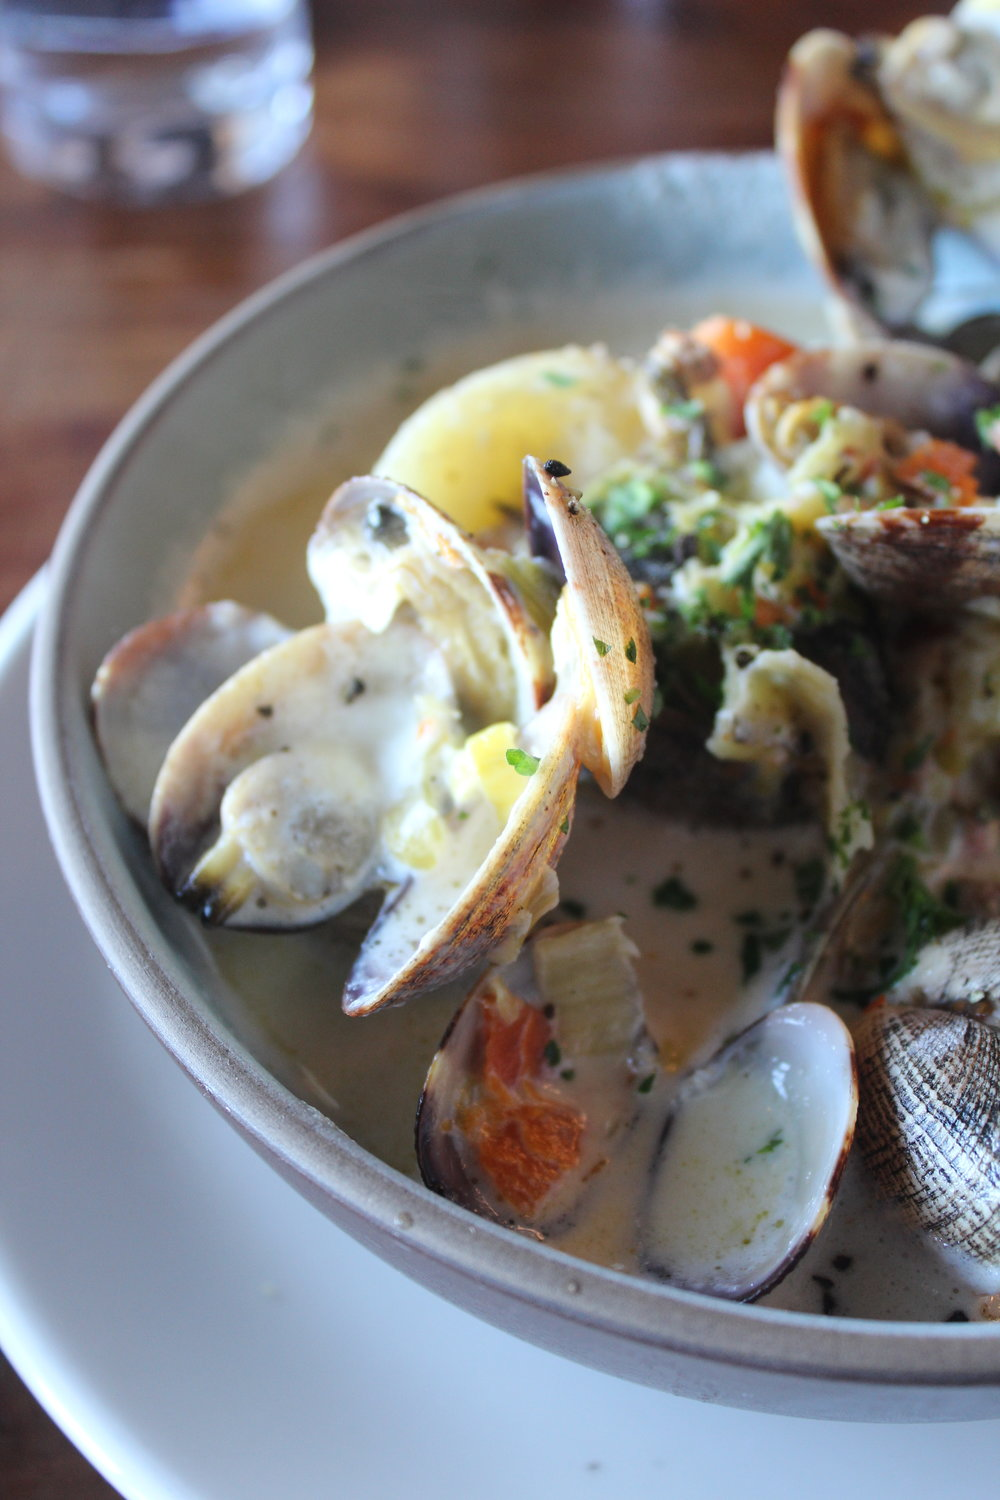 Hog Island Oyster Co. | Freckled Italian